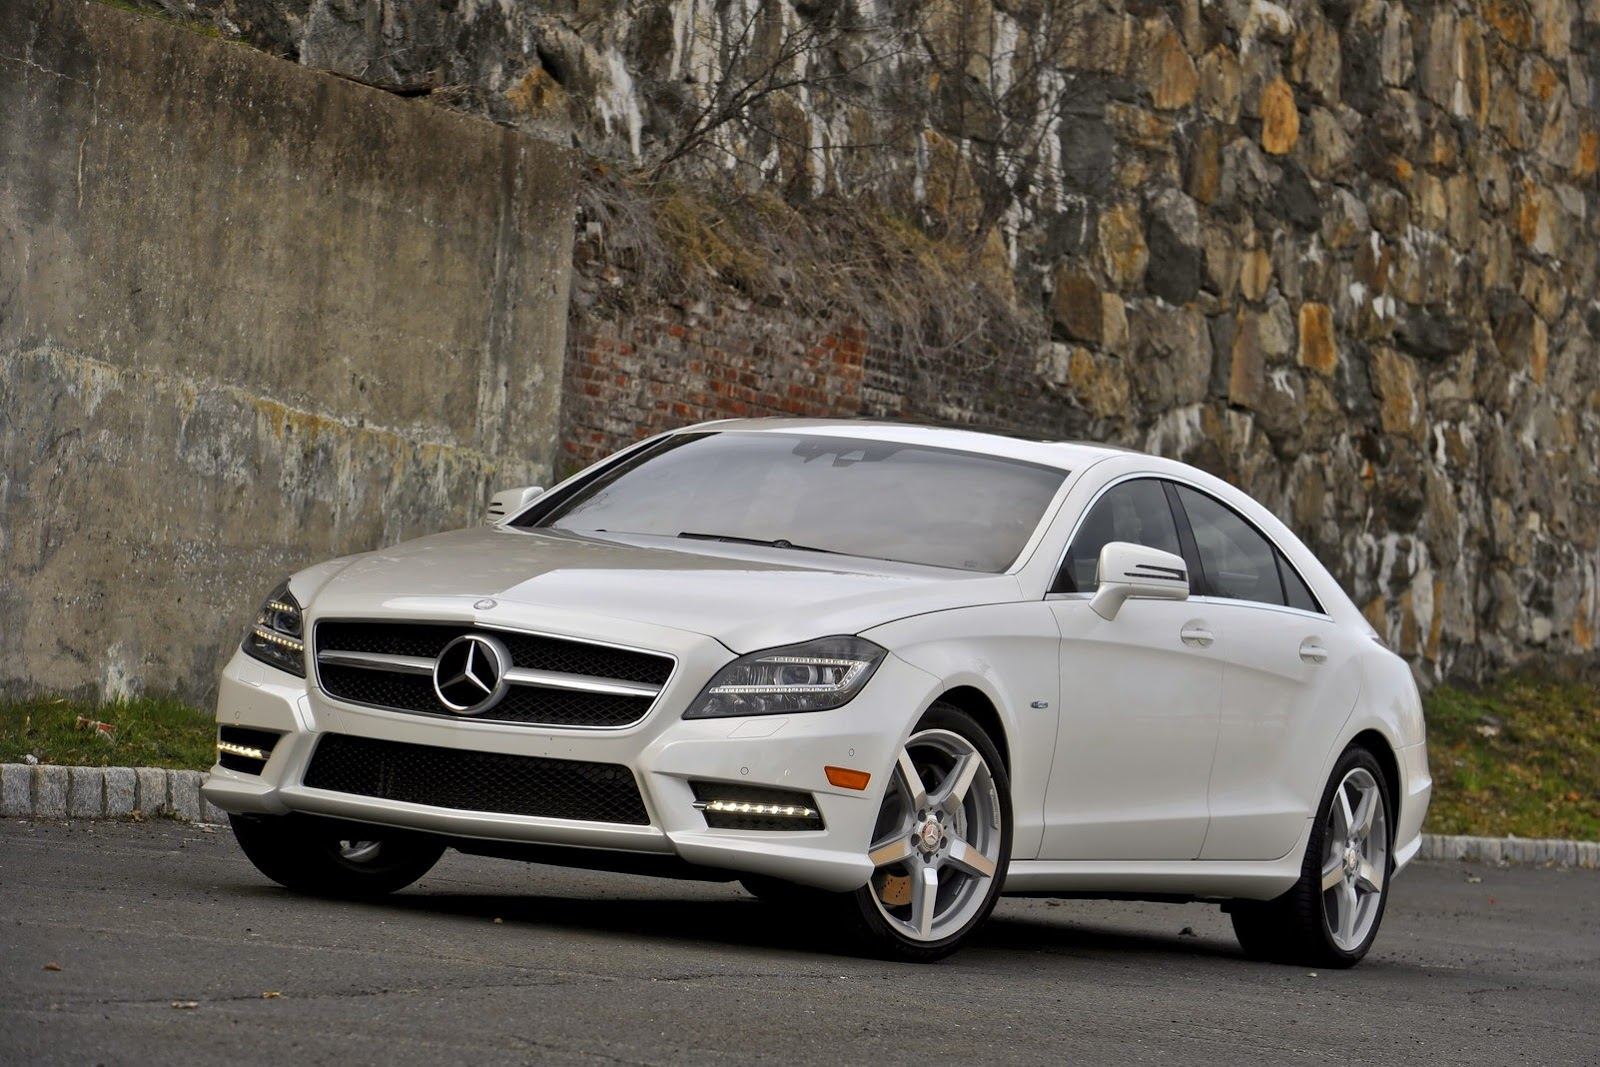 Mercedes Cls Recalled Because Hood May Open While Driving 2008 Benz Cls550 Rims 3 Photos